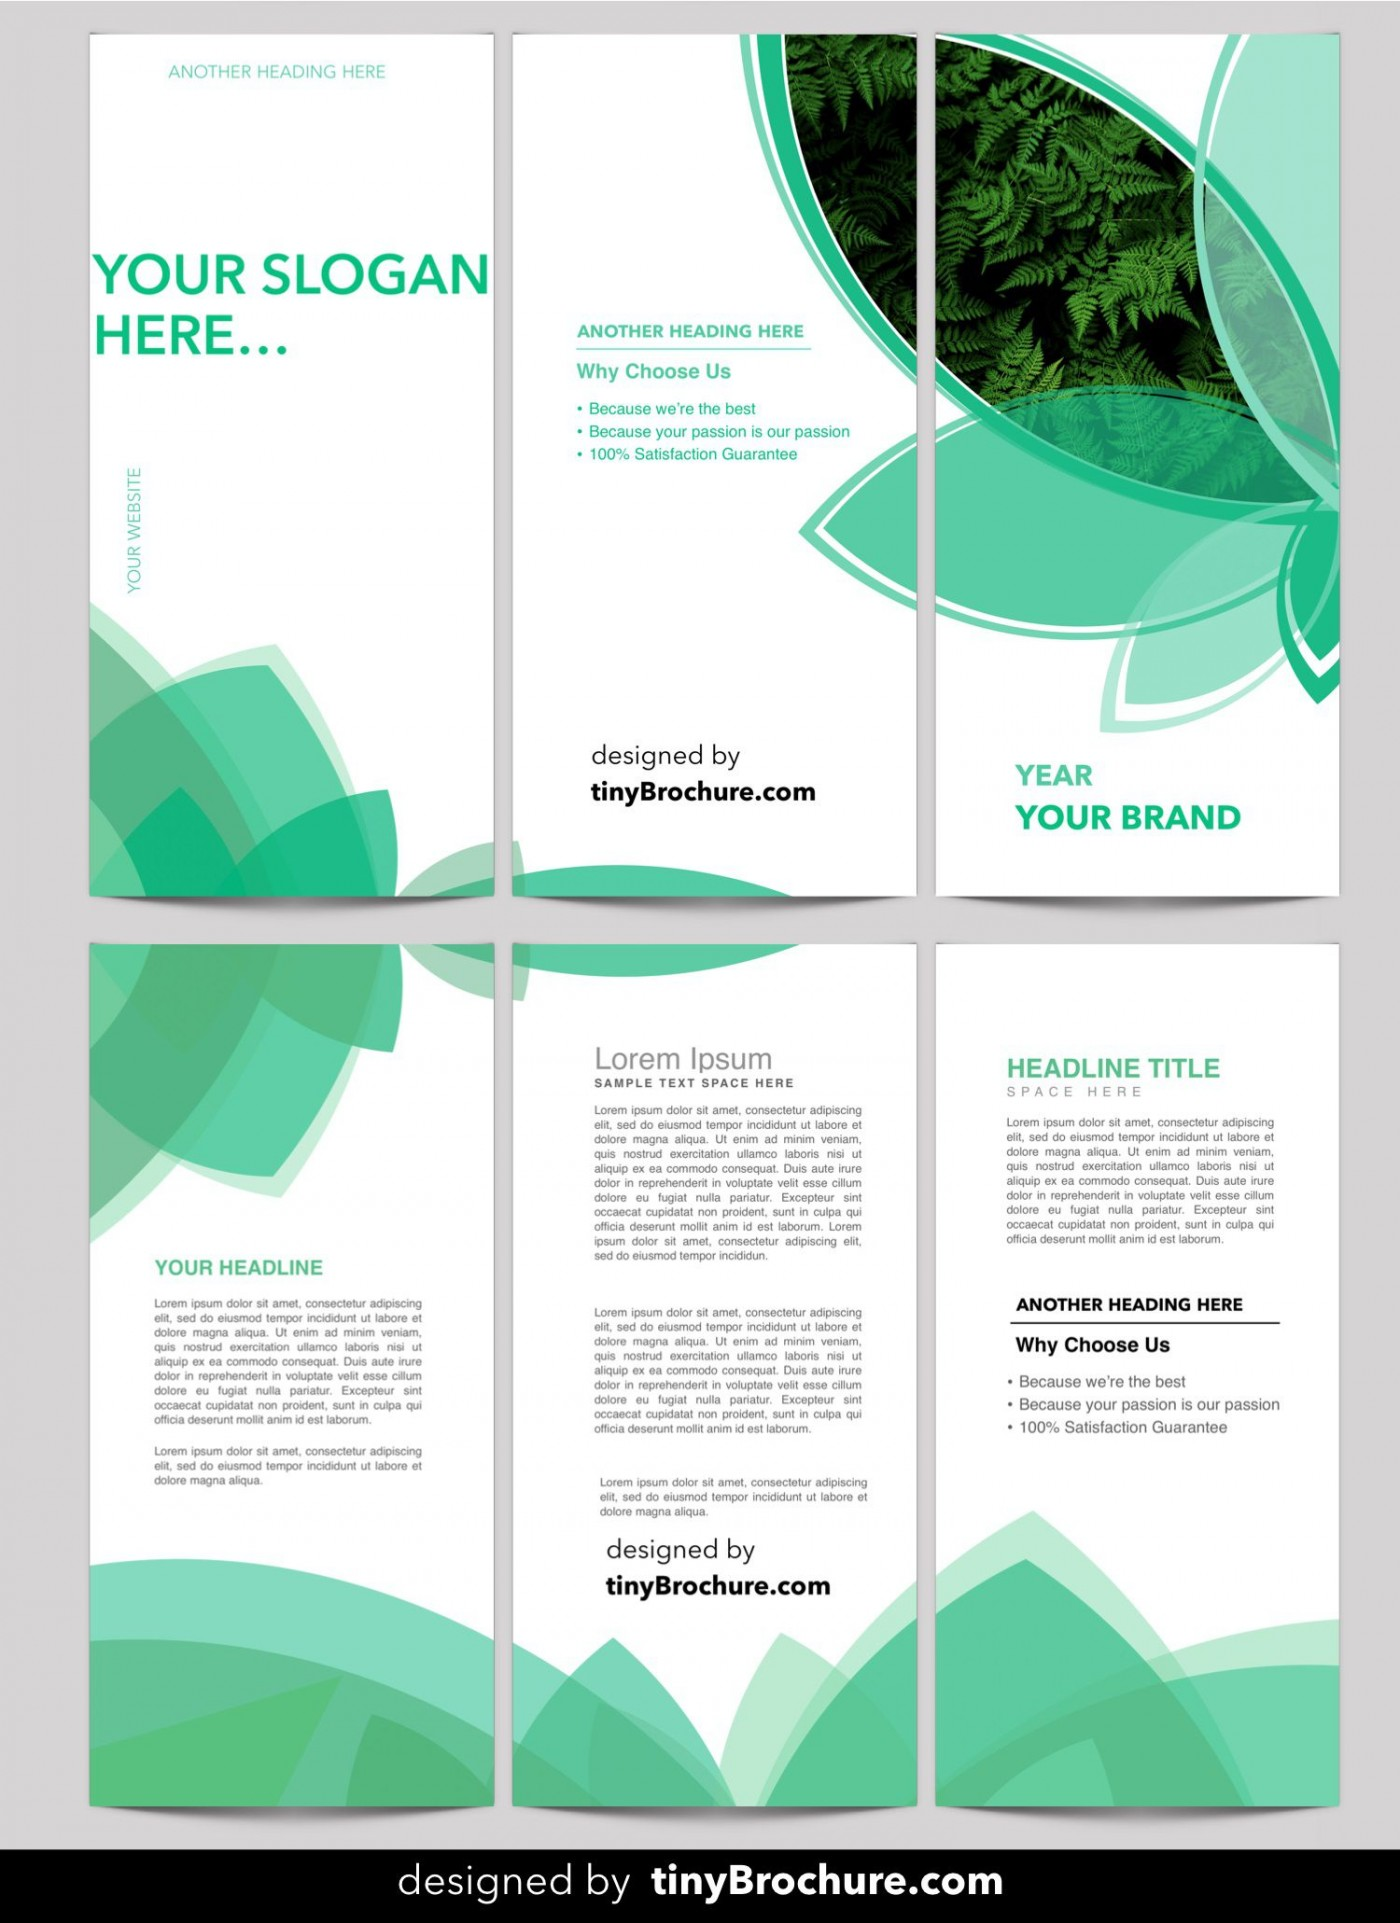 000 Breathtaking Brochure Template Free Download High Definition  For Word 2010 Microsoft Ppt1400